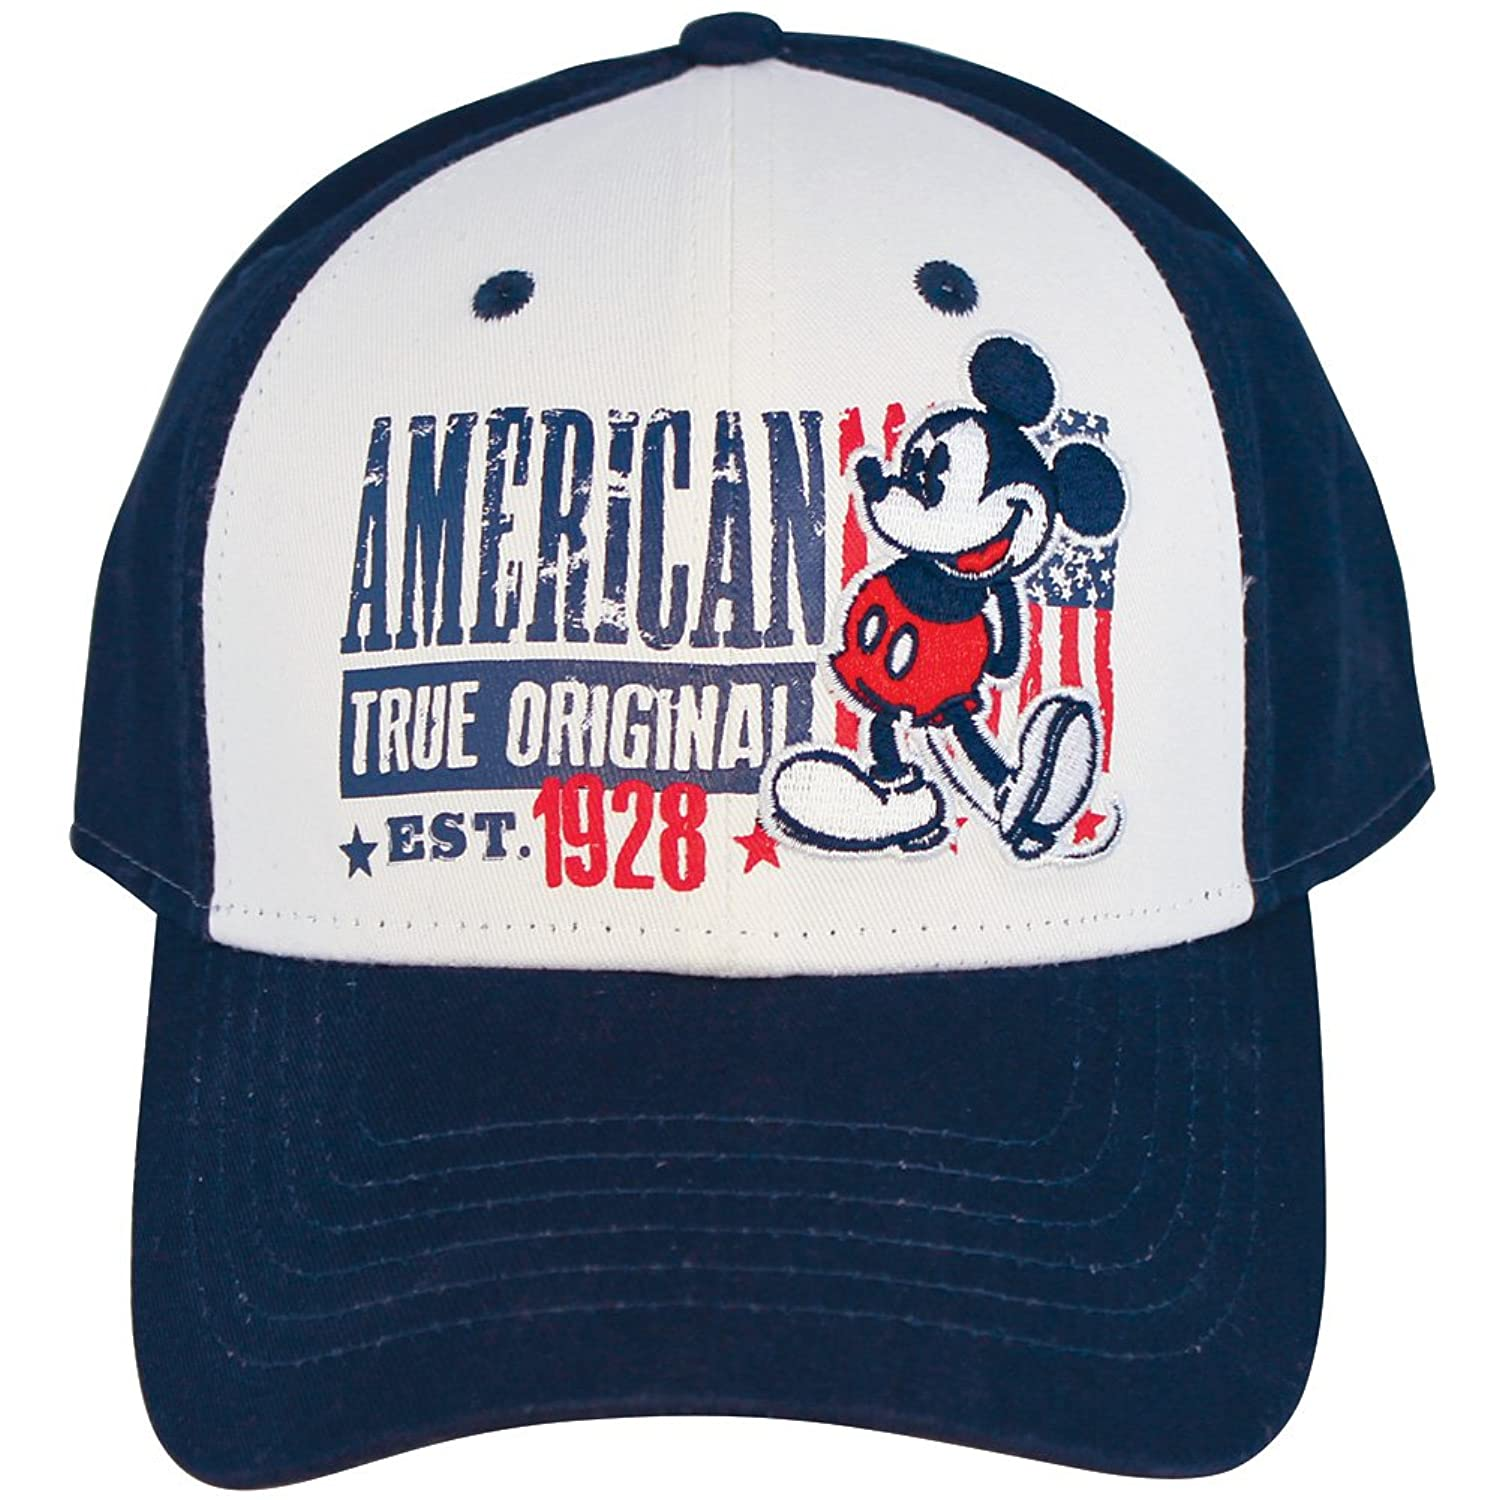 Amazon.com: Disney Mickey Mouse American True Original Est 1928 100% Cotton Baseball Cap: Clothing